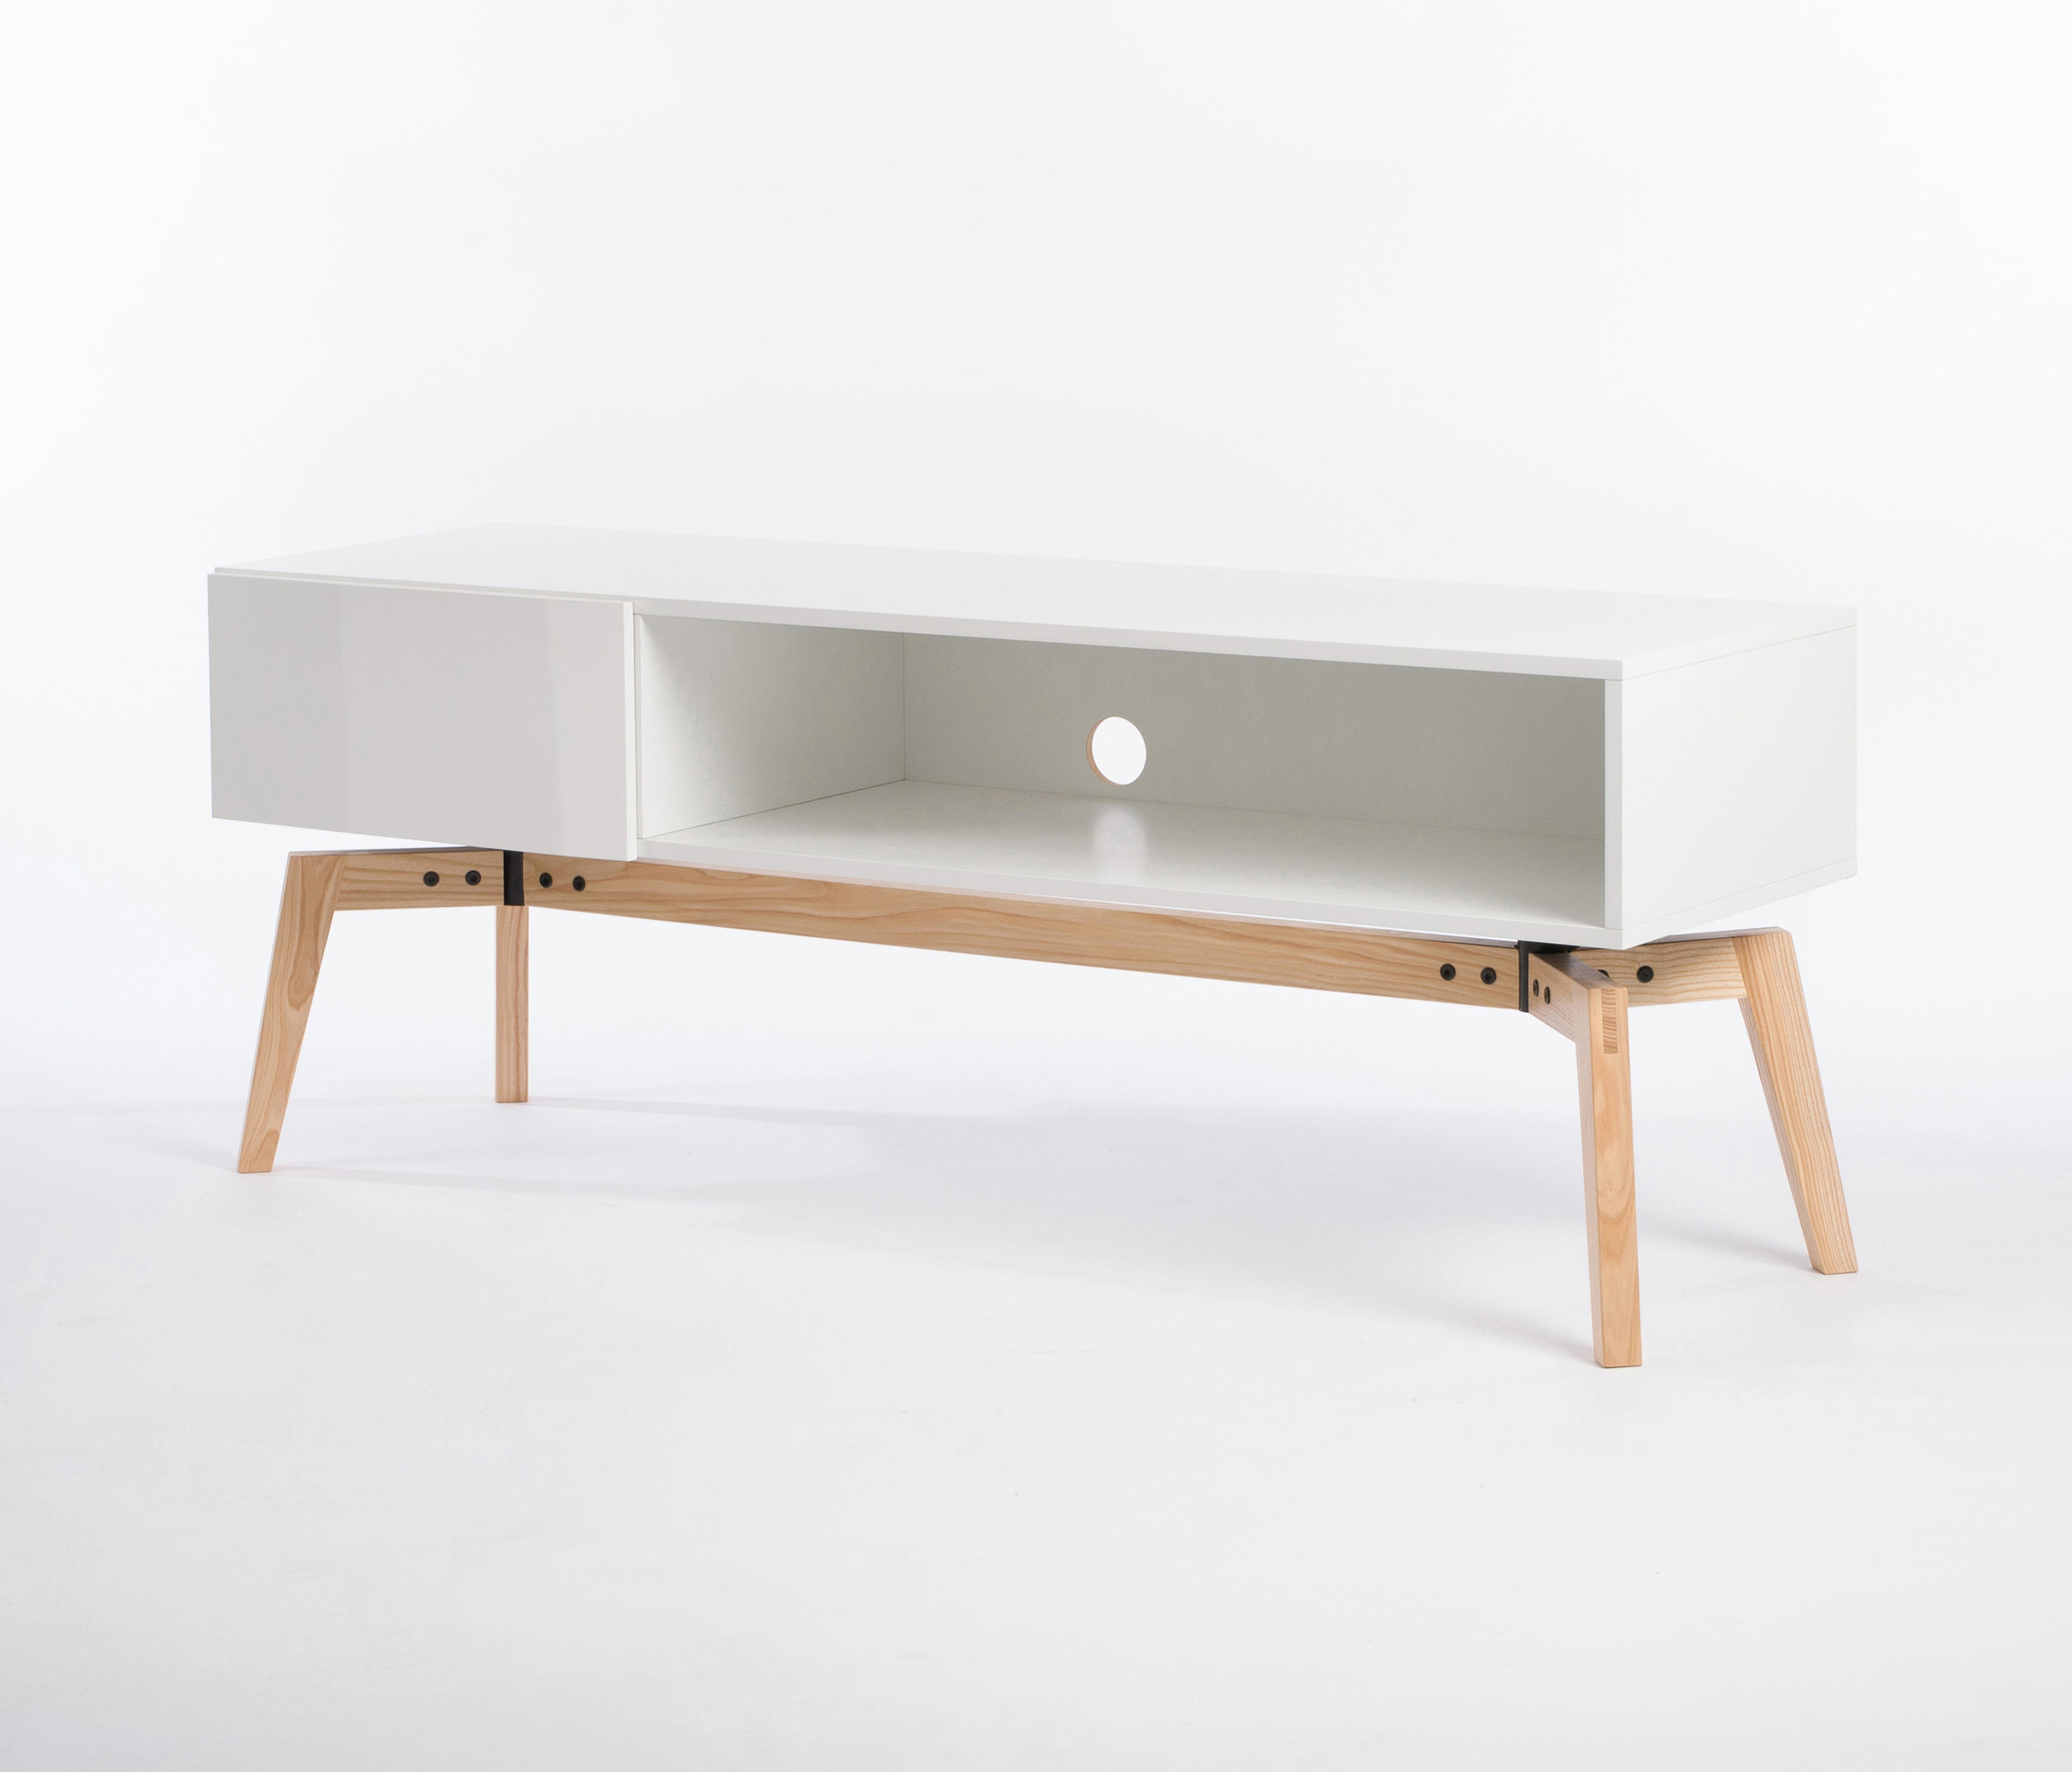 Lowboard Design Klassiker Multimedia Sideboards Hochwertige Designer Multimedia Sideboards